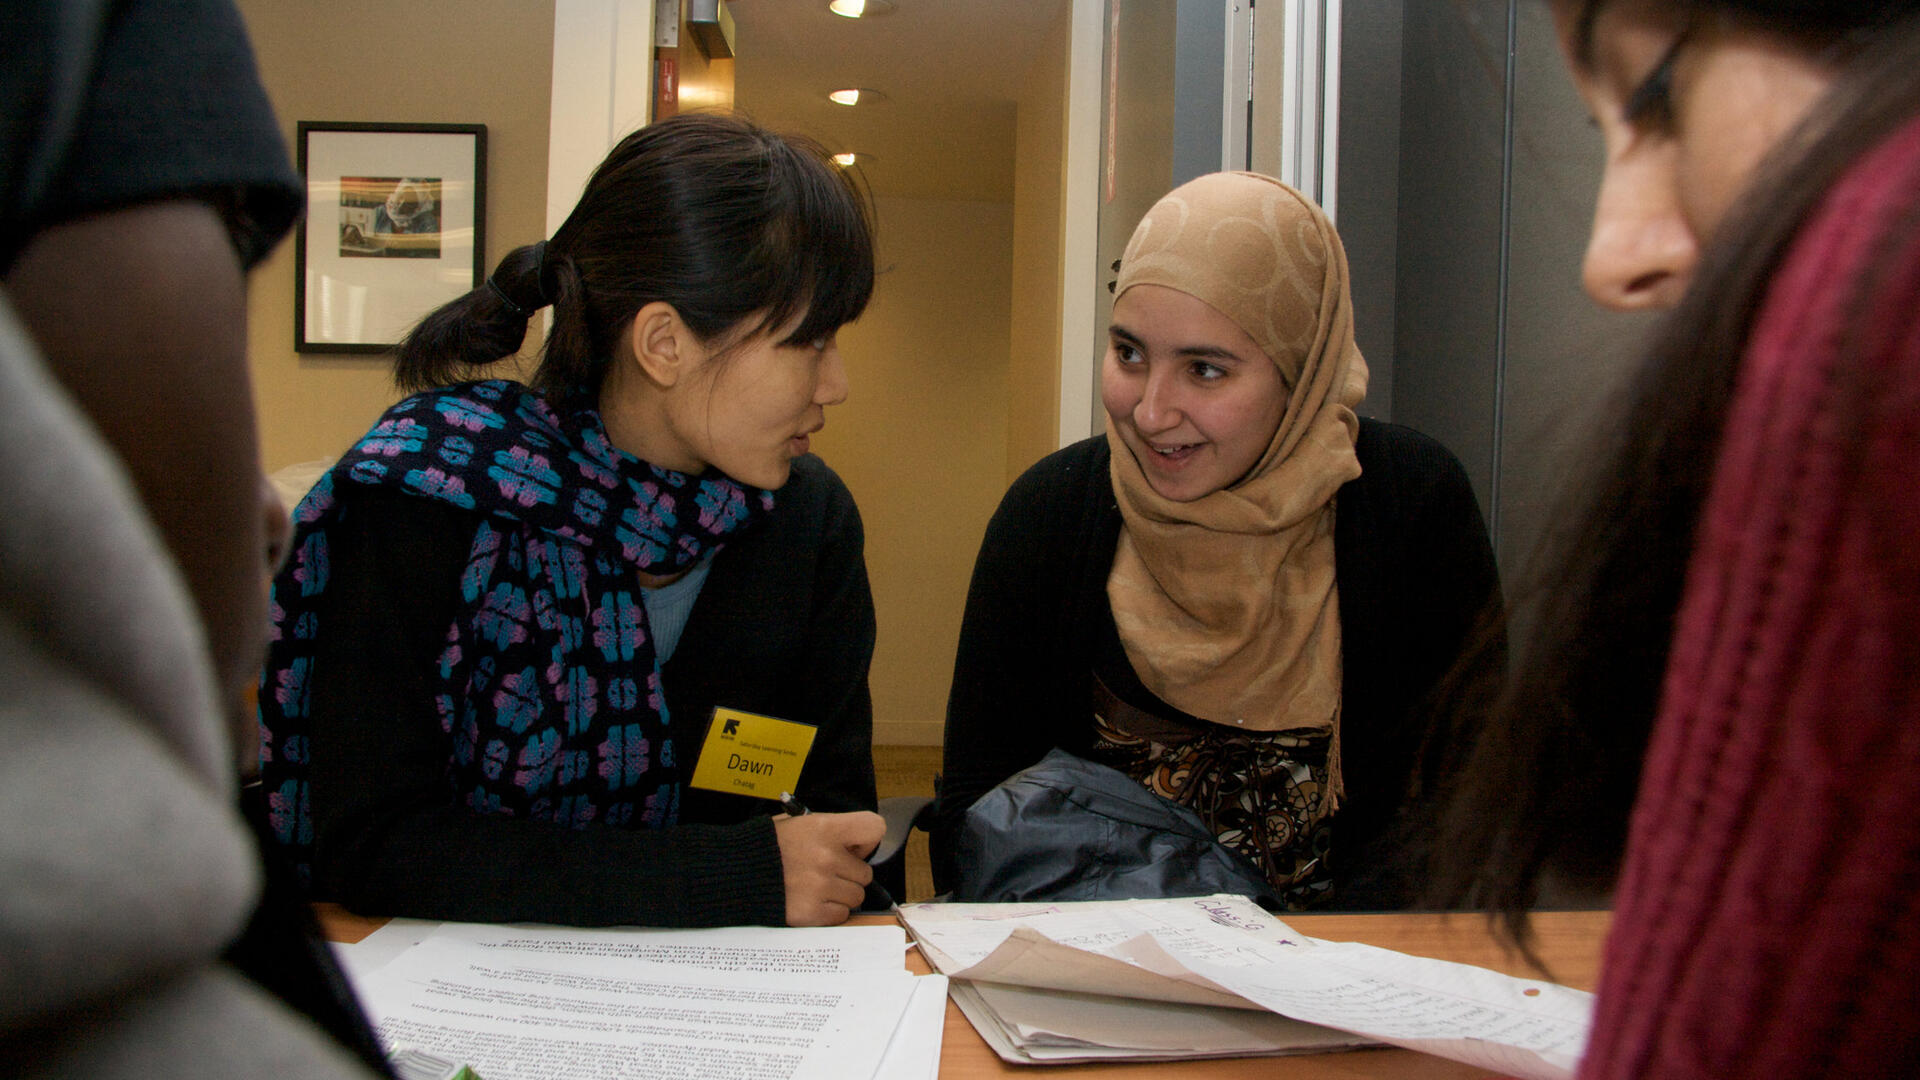 Volunteers work with refugees in an ESL class at the IRC resettlement office in New York